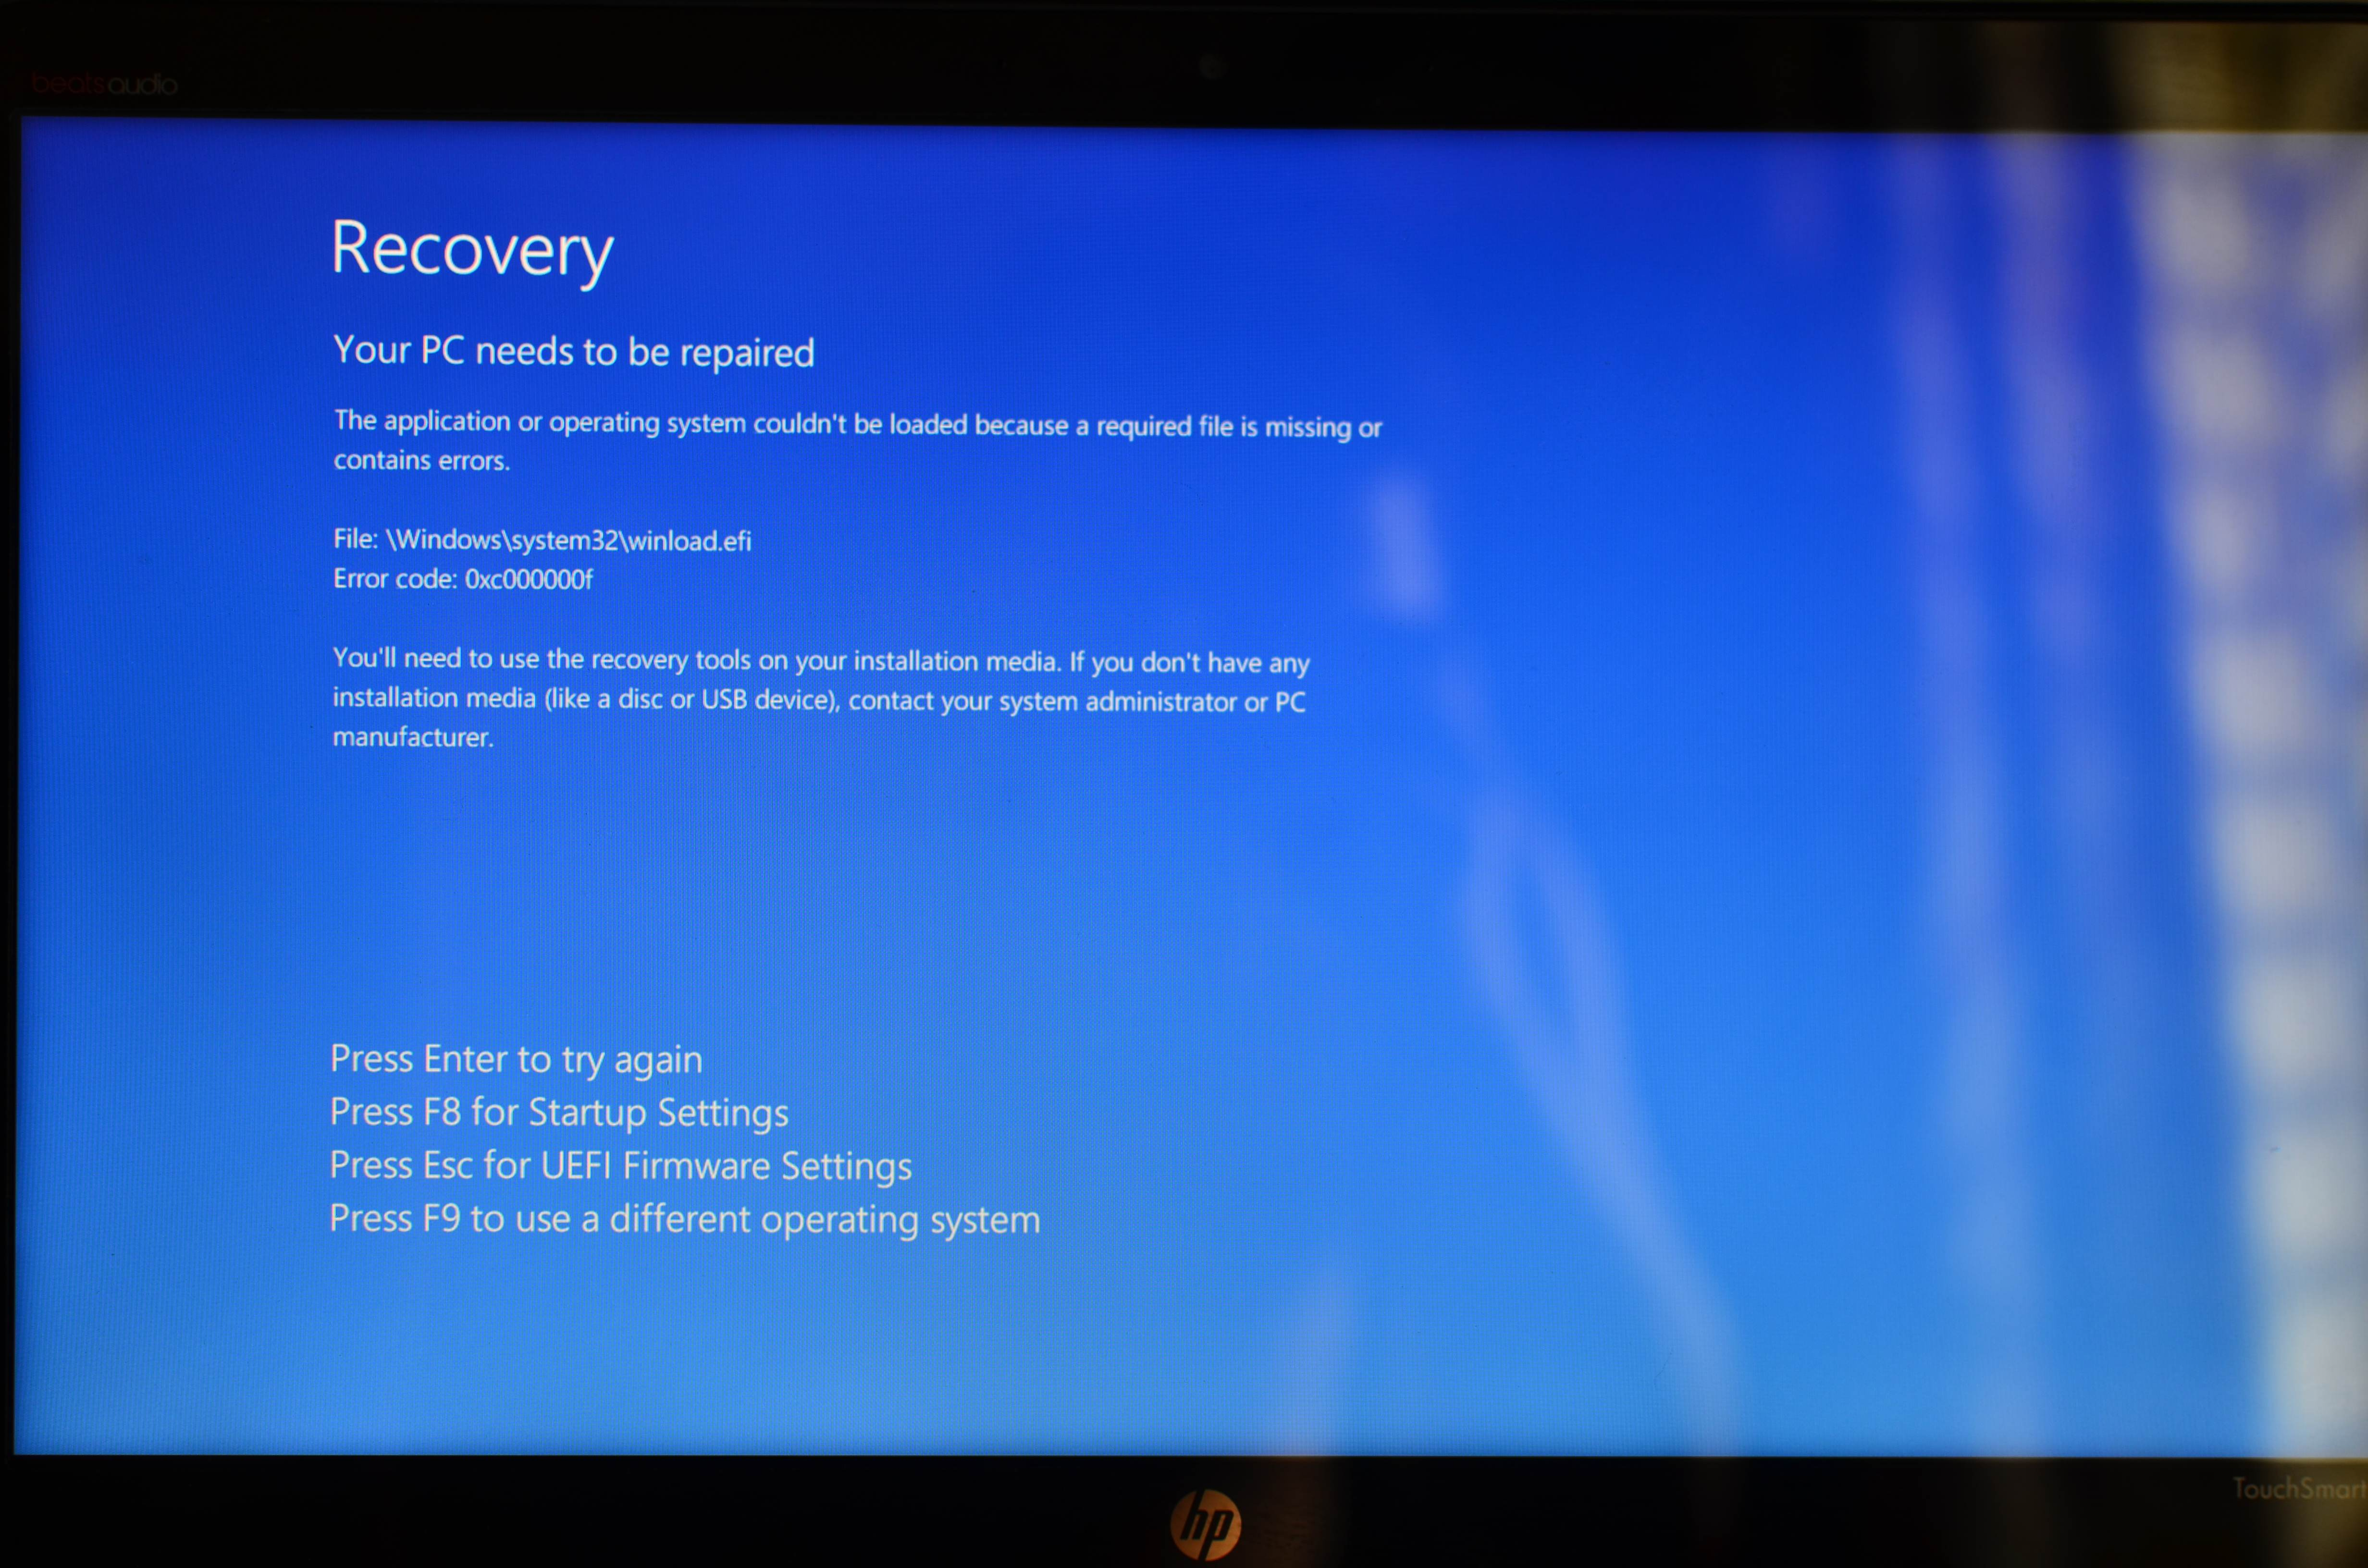 Recovery HP ENVY h8-1430 - eehelp com